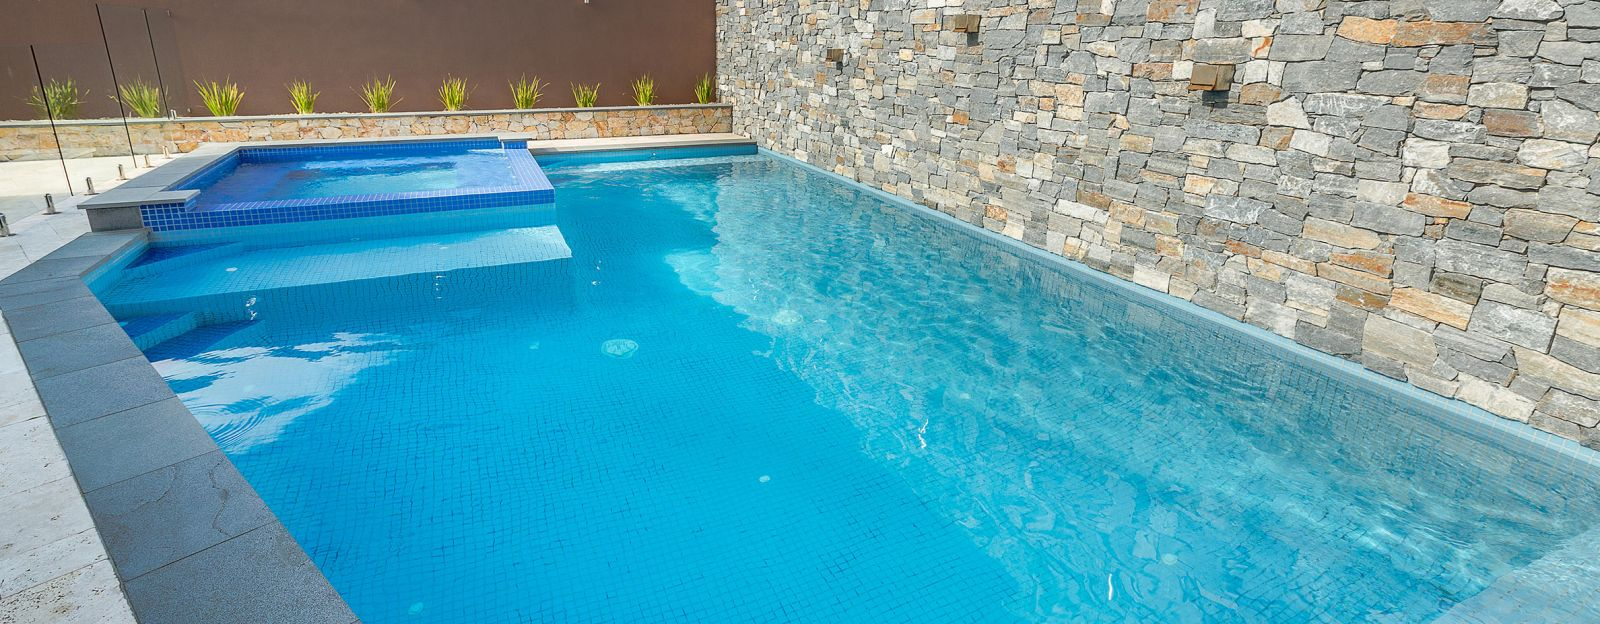 pool for small spaces